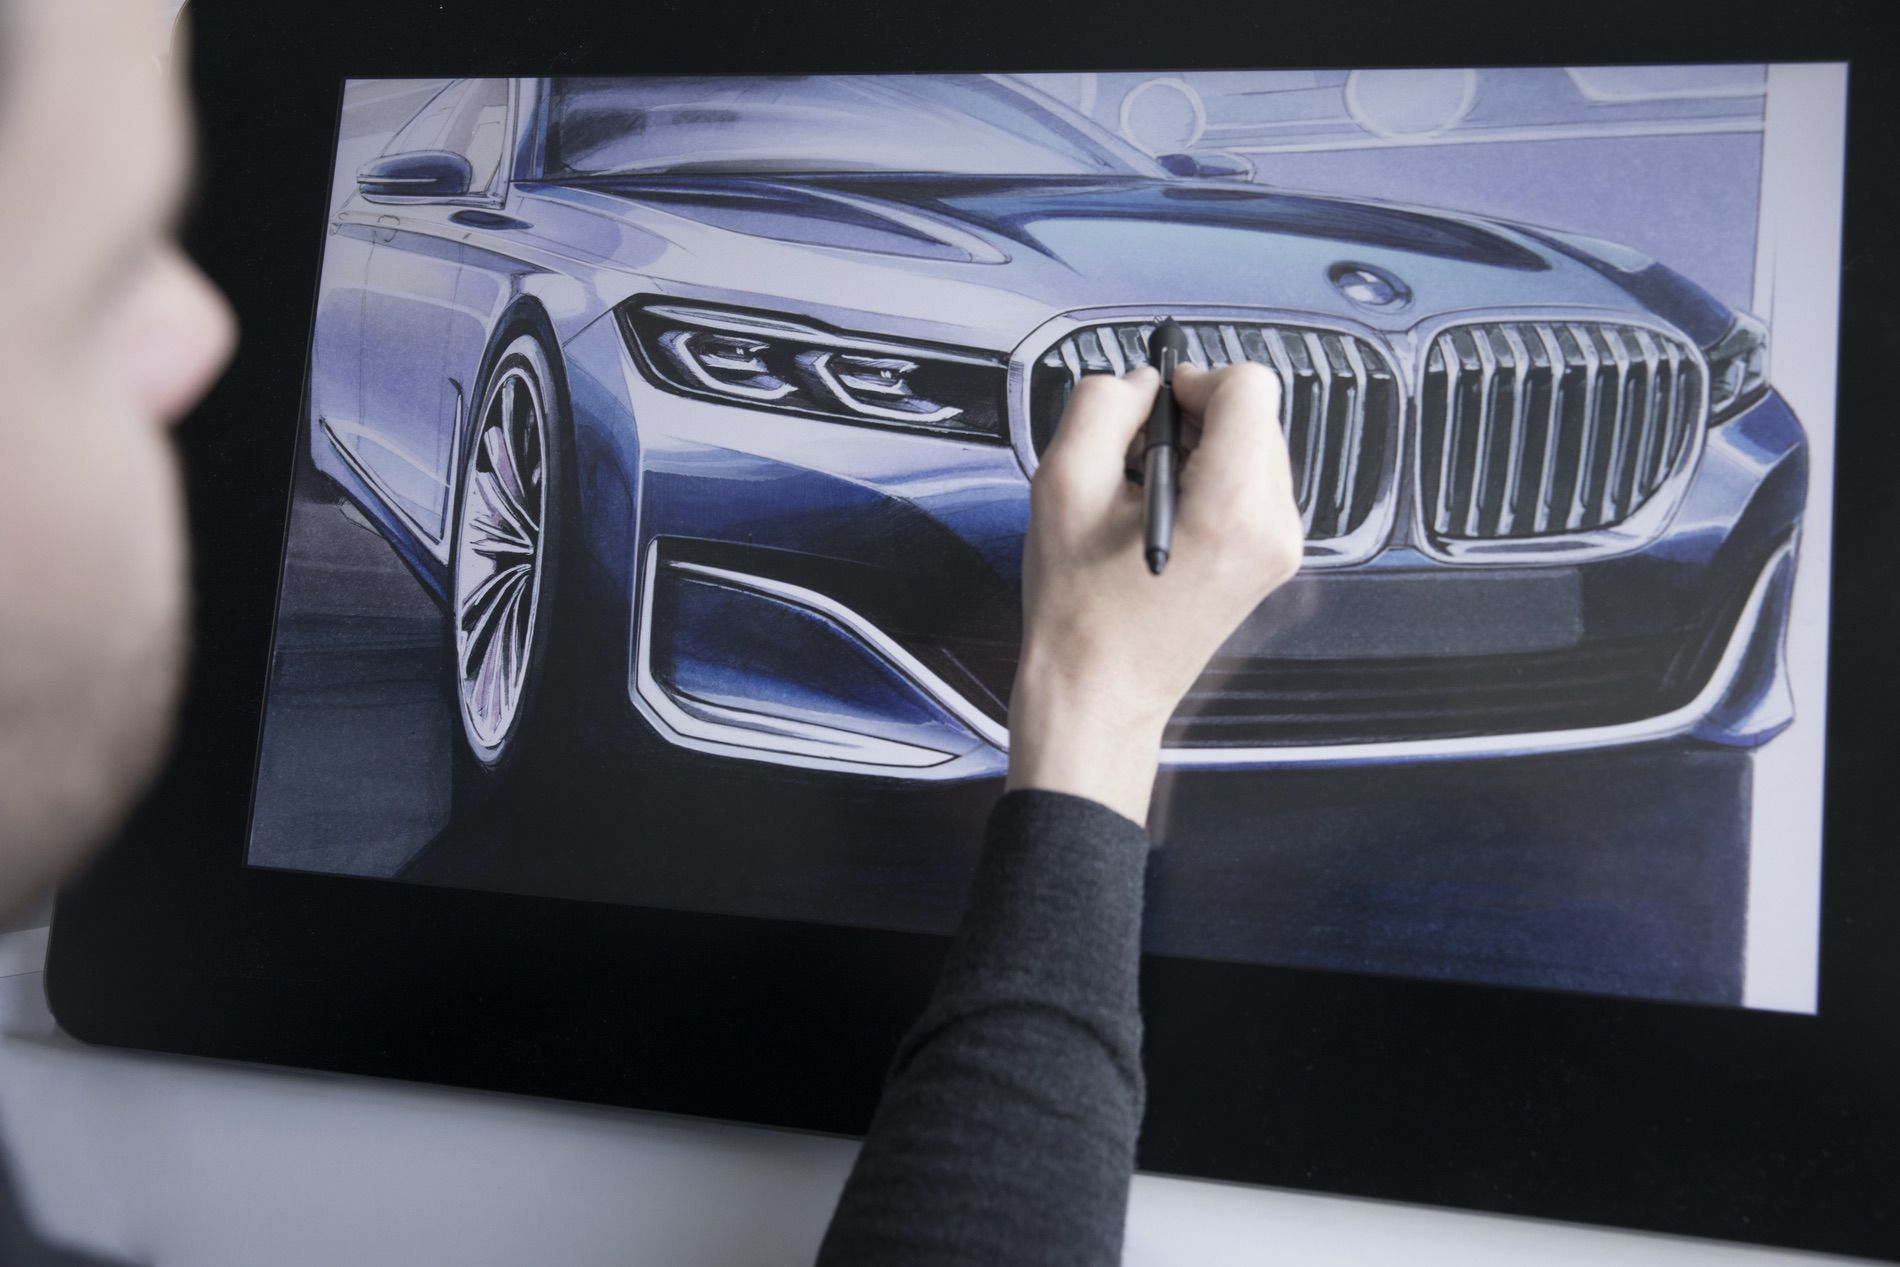 BMW 7 Series Facelift sketches 06